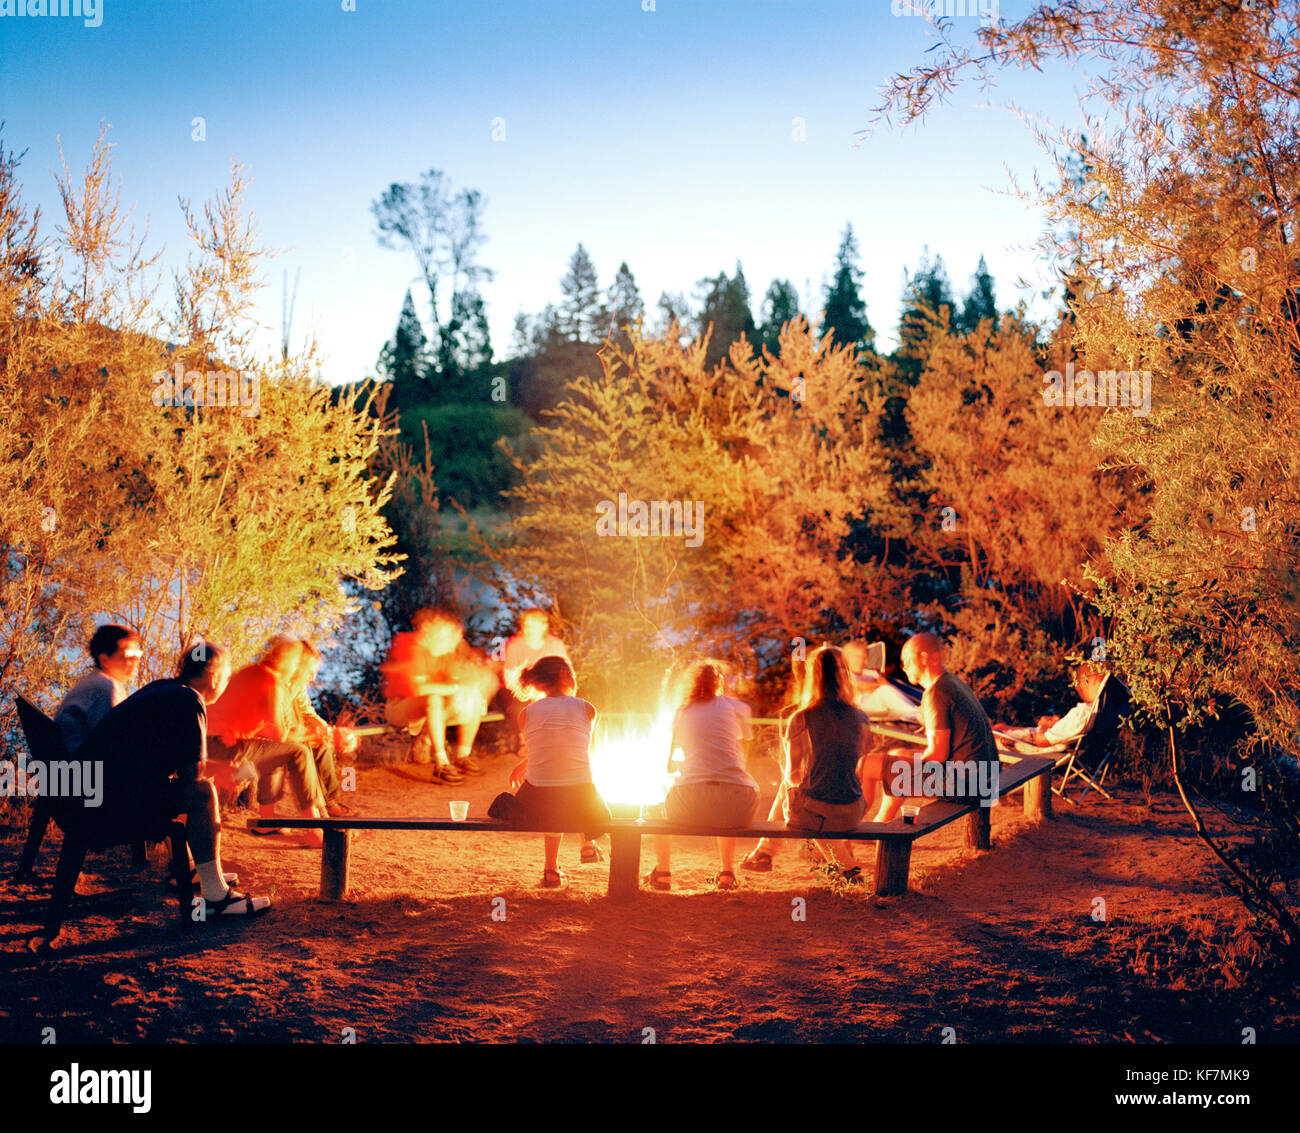 USA, California, Coloma, campfire at dusk by the South Fork of the American River - Stock Image